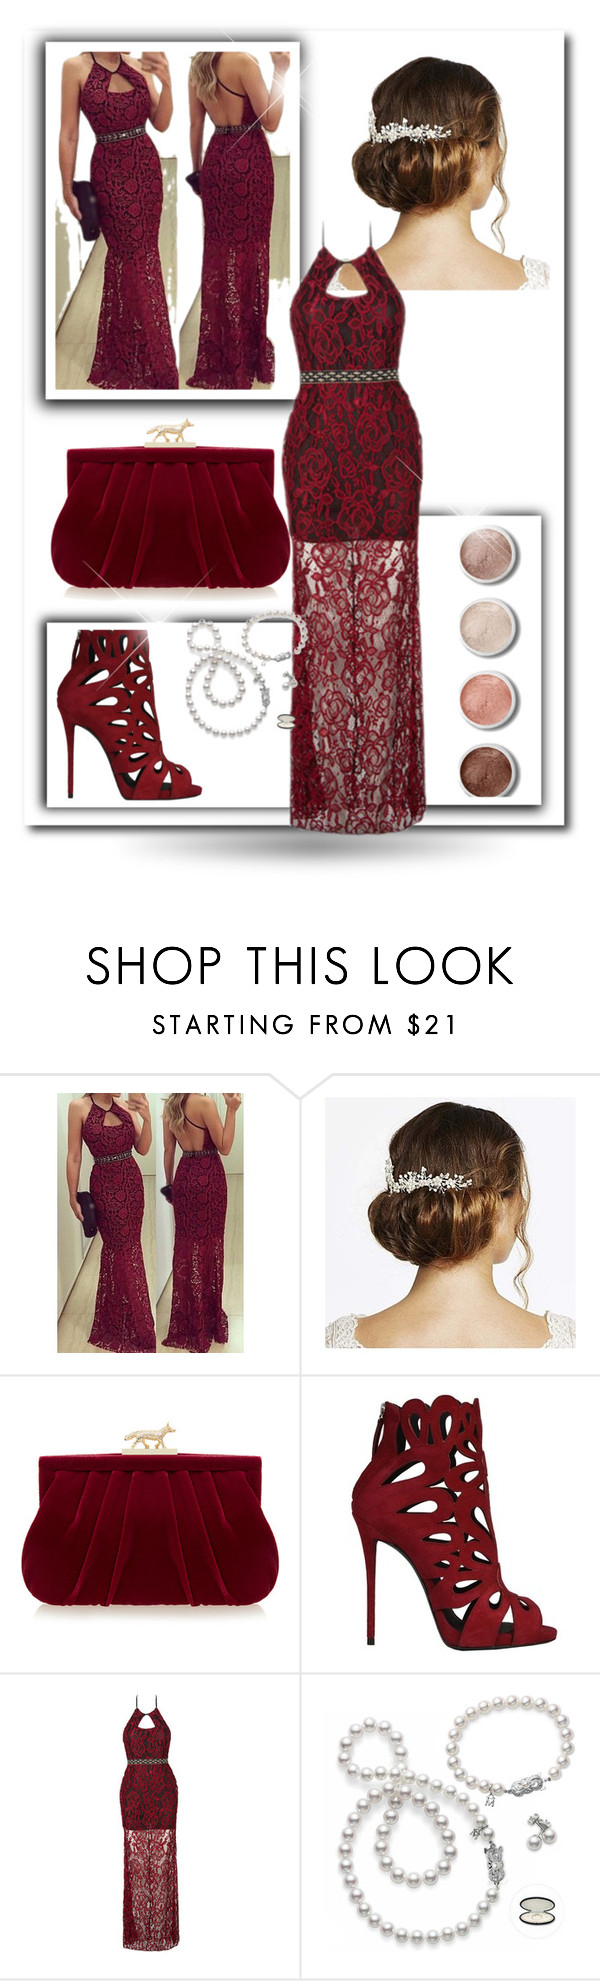 """""""a long dresess with lace"""" by fatmafatma123 ❤ liked on Polyvore featuring Jon Richard, Wilbur & Gussie, Terre Mère, Giuseppe Zanotti and Mikimoto"""